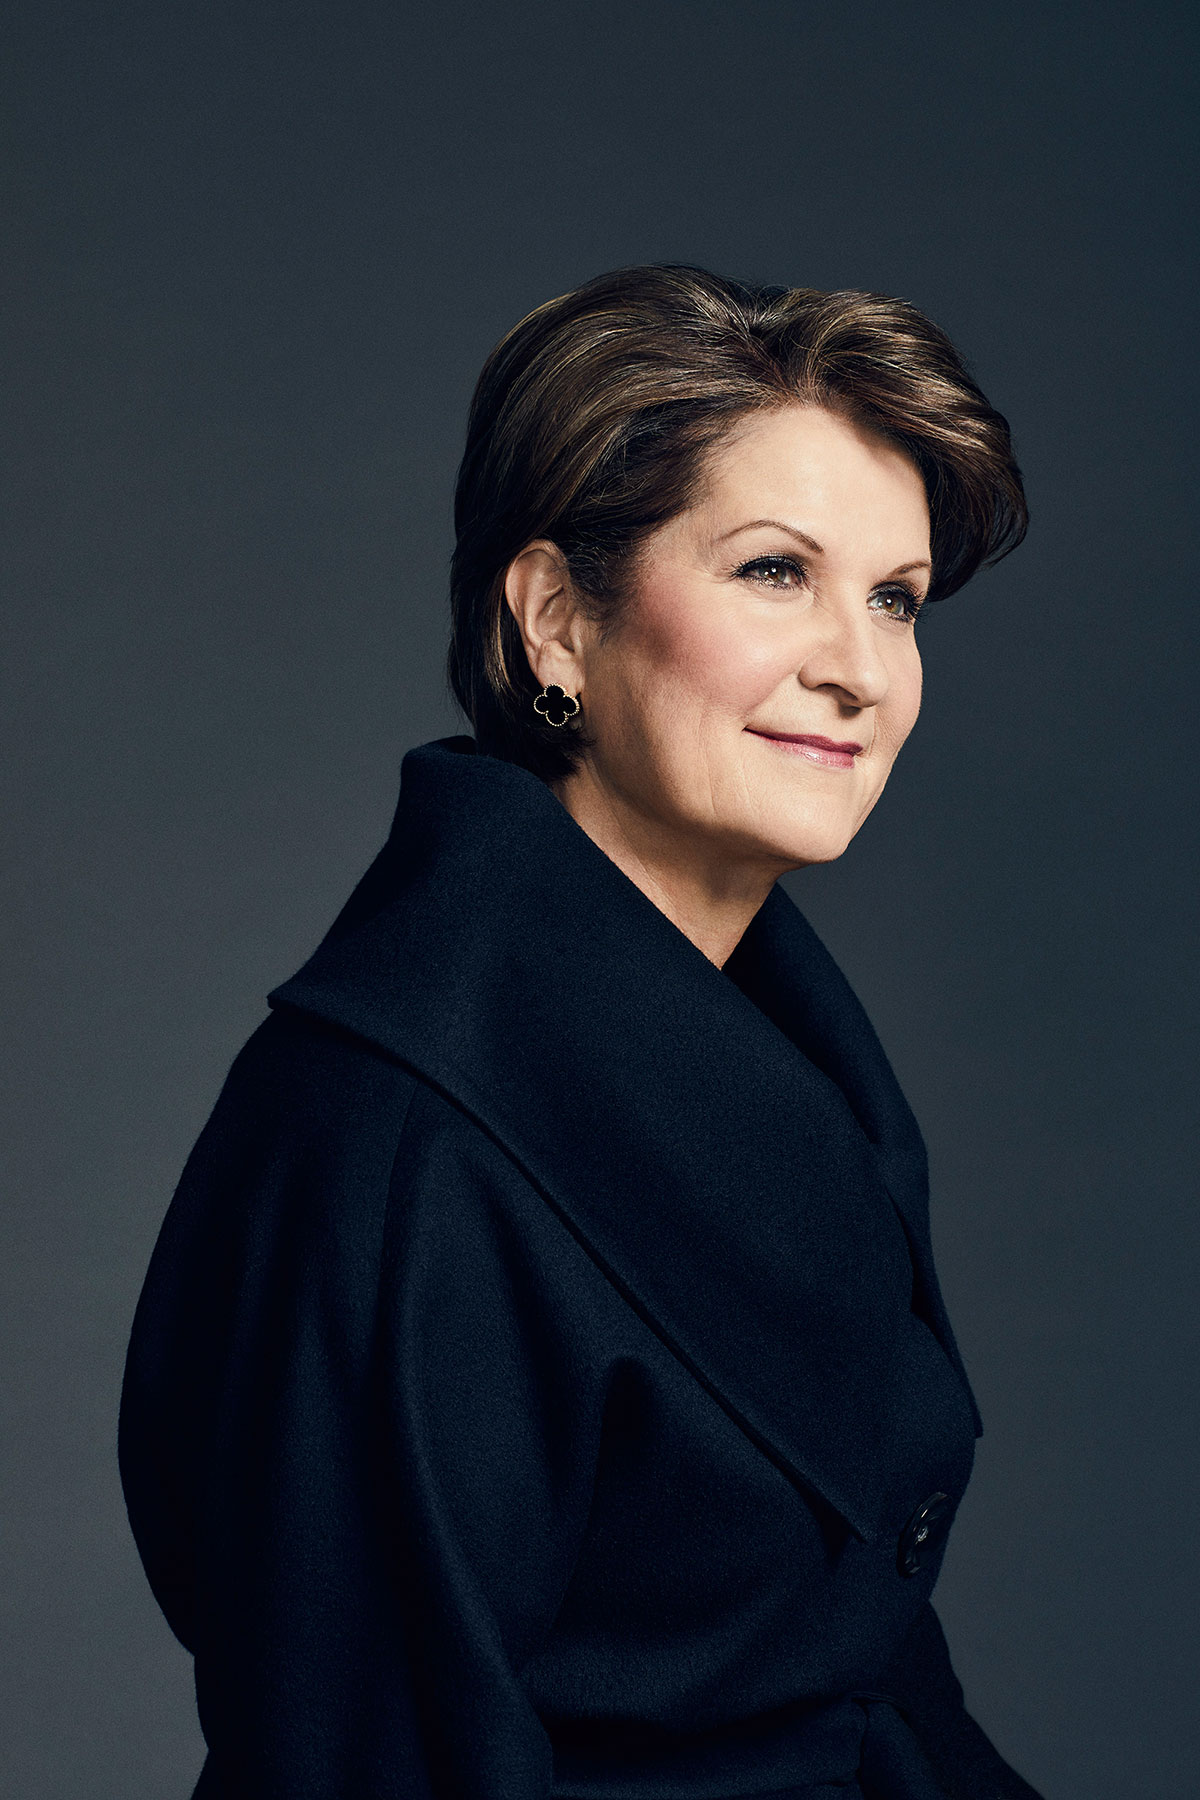 Chairman, CEO, and president of Lockheed Martin, Marillyn Hewson